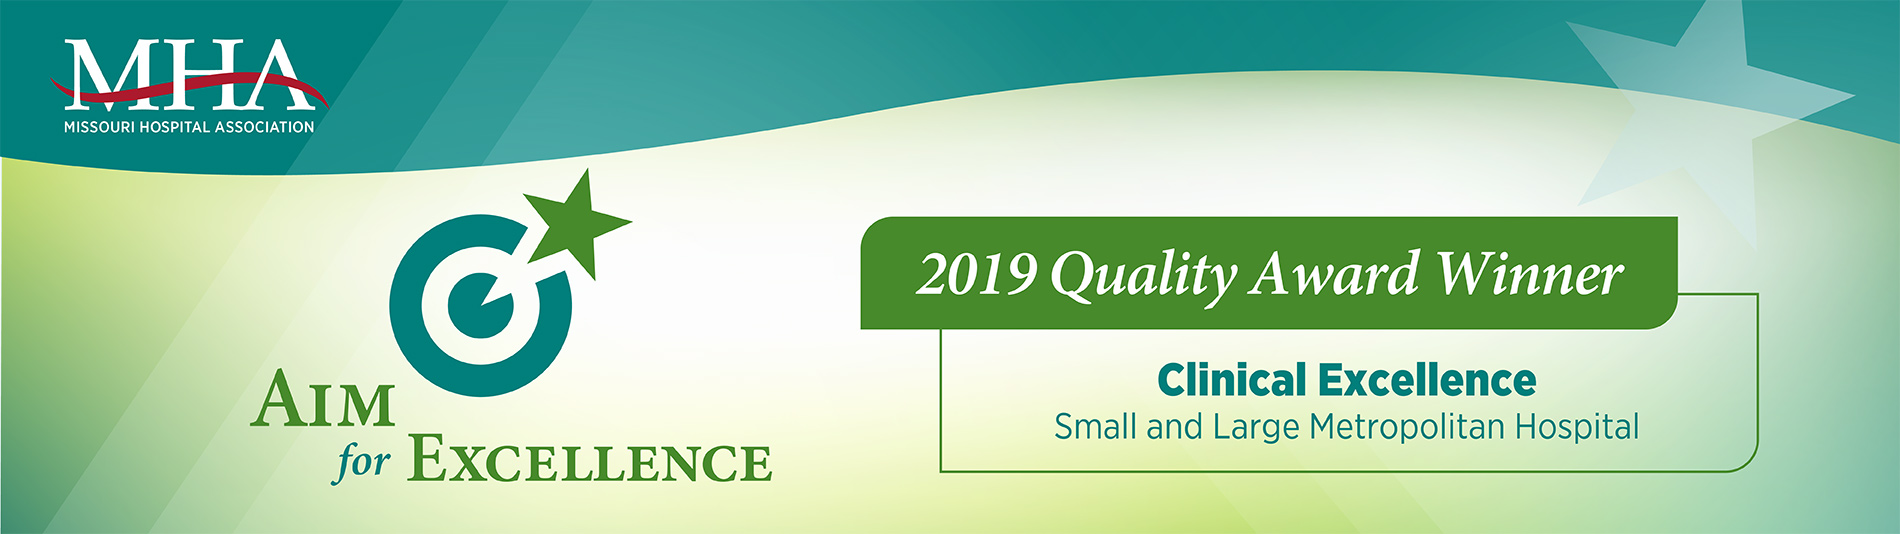 Saint Francis is a Missouri Hospital Association Aim for Excellence 2019 Quality Award Winner in Clinical Excellence for Small and Large Metropolitan Hospitals